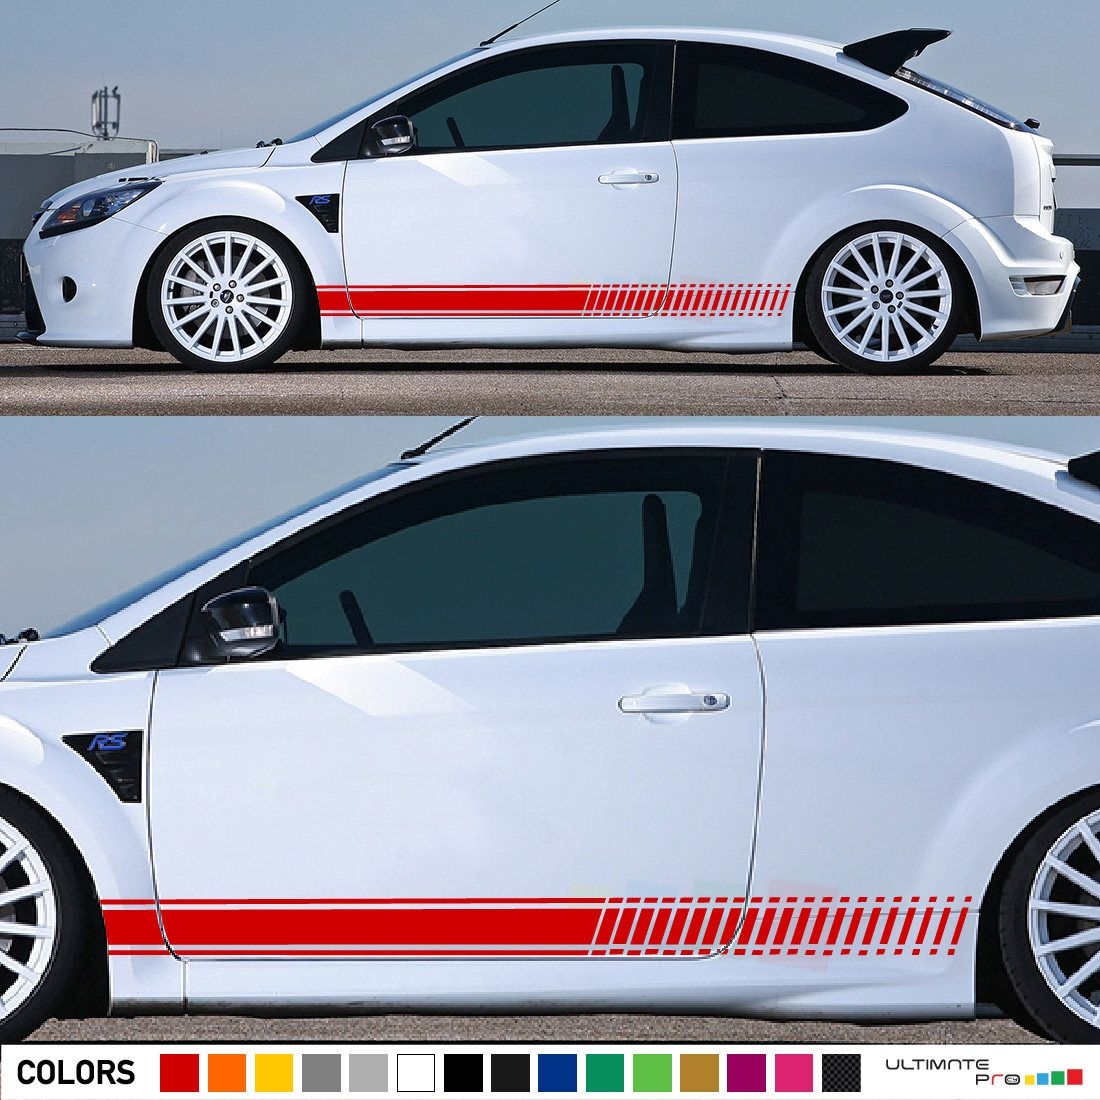 Kit Decal Sticker Vinyl Side Racing Stripes Compatible With Ford Focus St Rs Mk2 2 Door 2004 2016 Ford Focus St Custom Stripes Ford Focus [ 1100 x 1100 Pixel ]